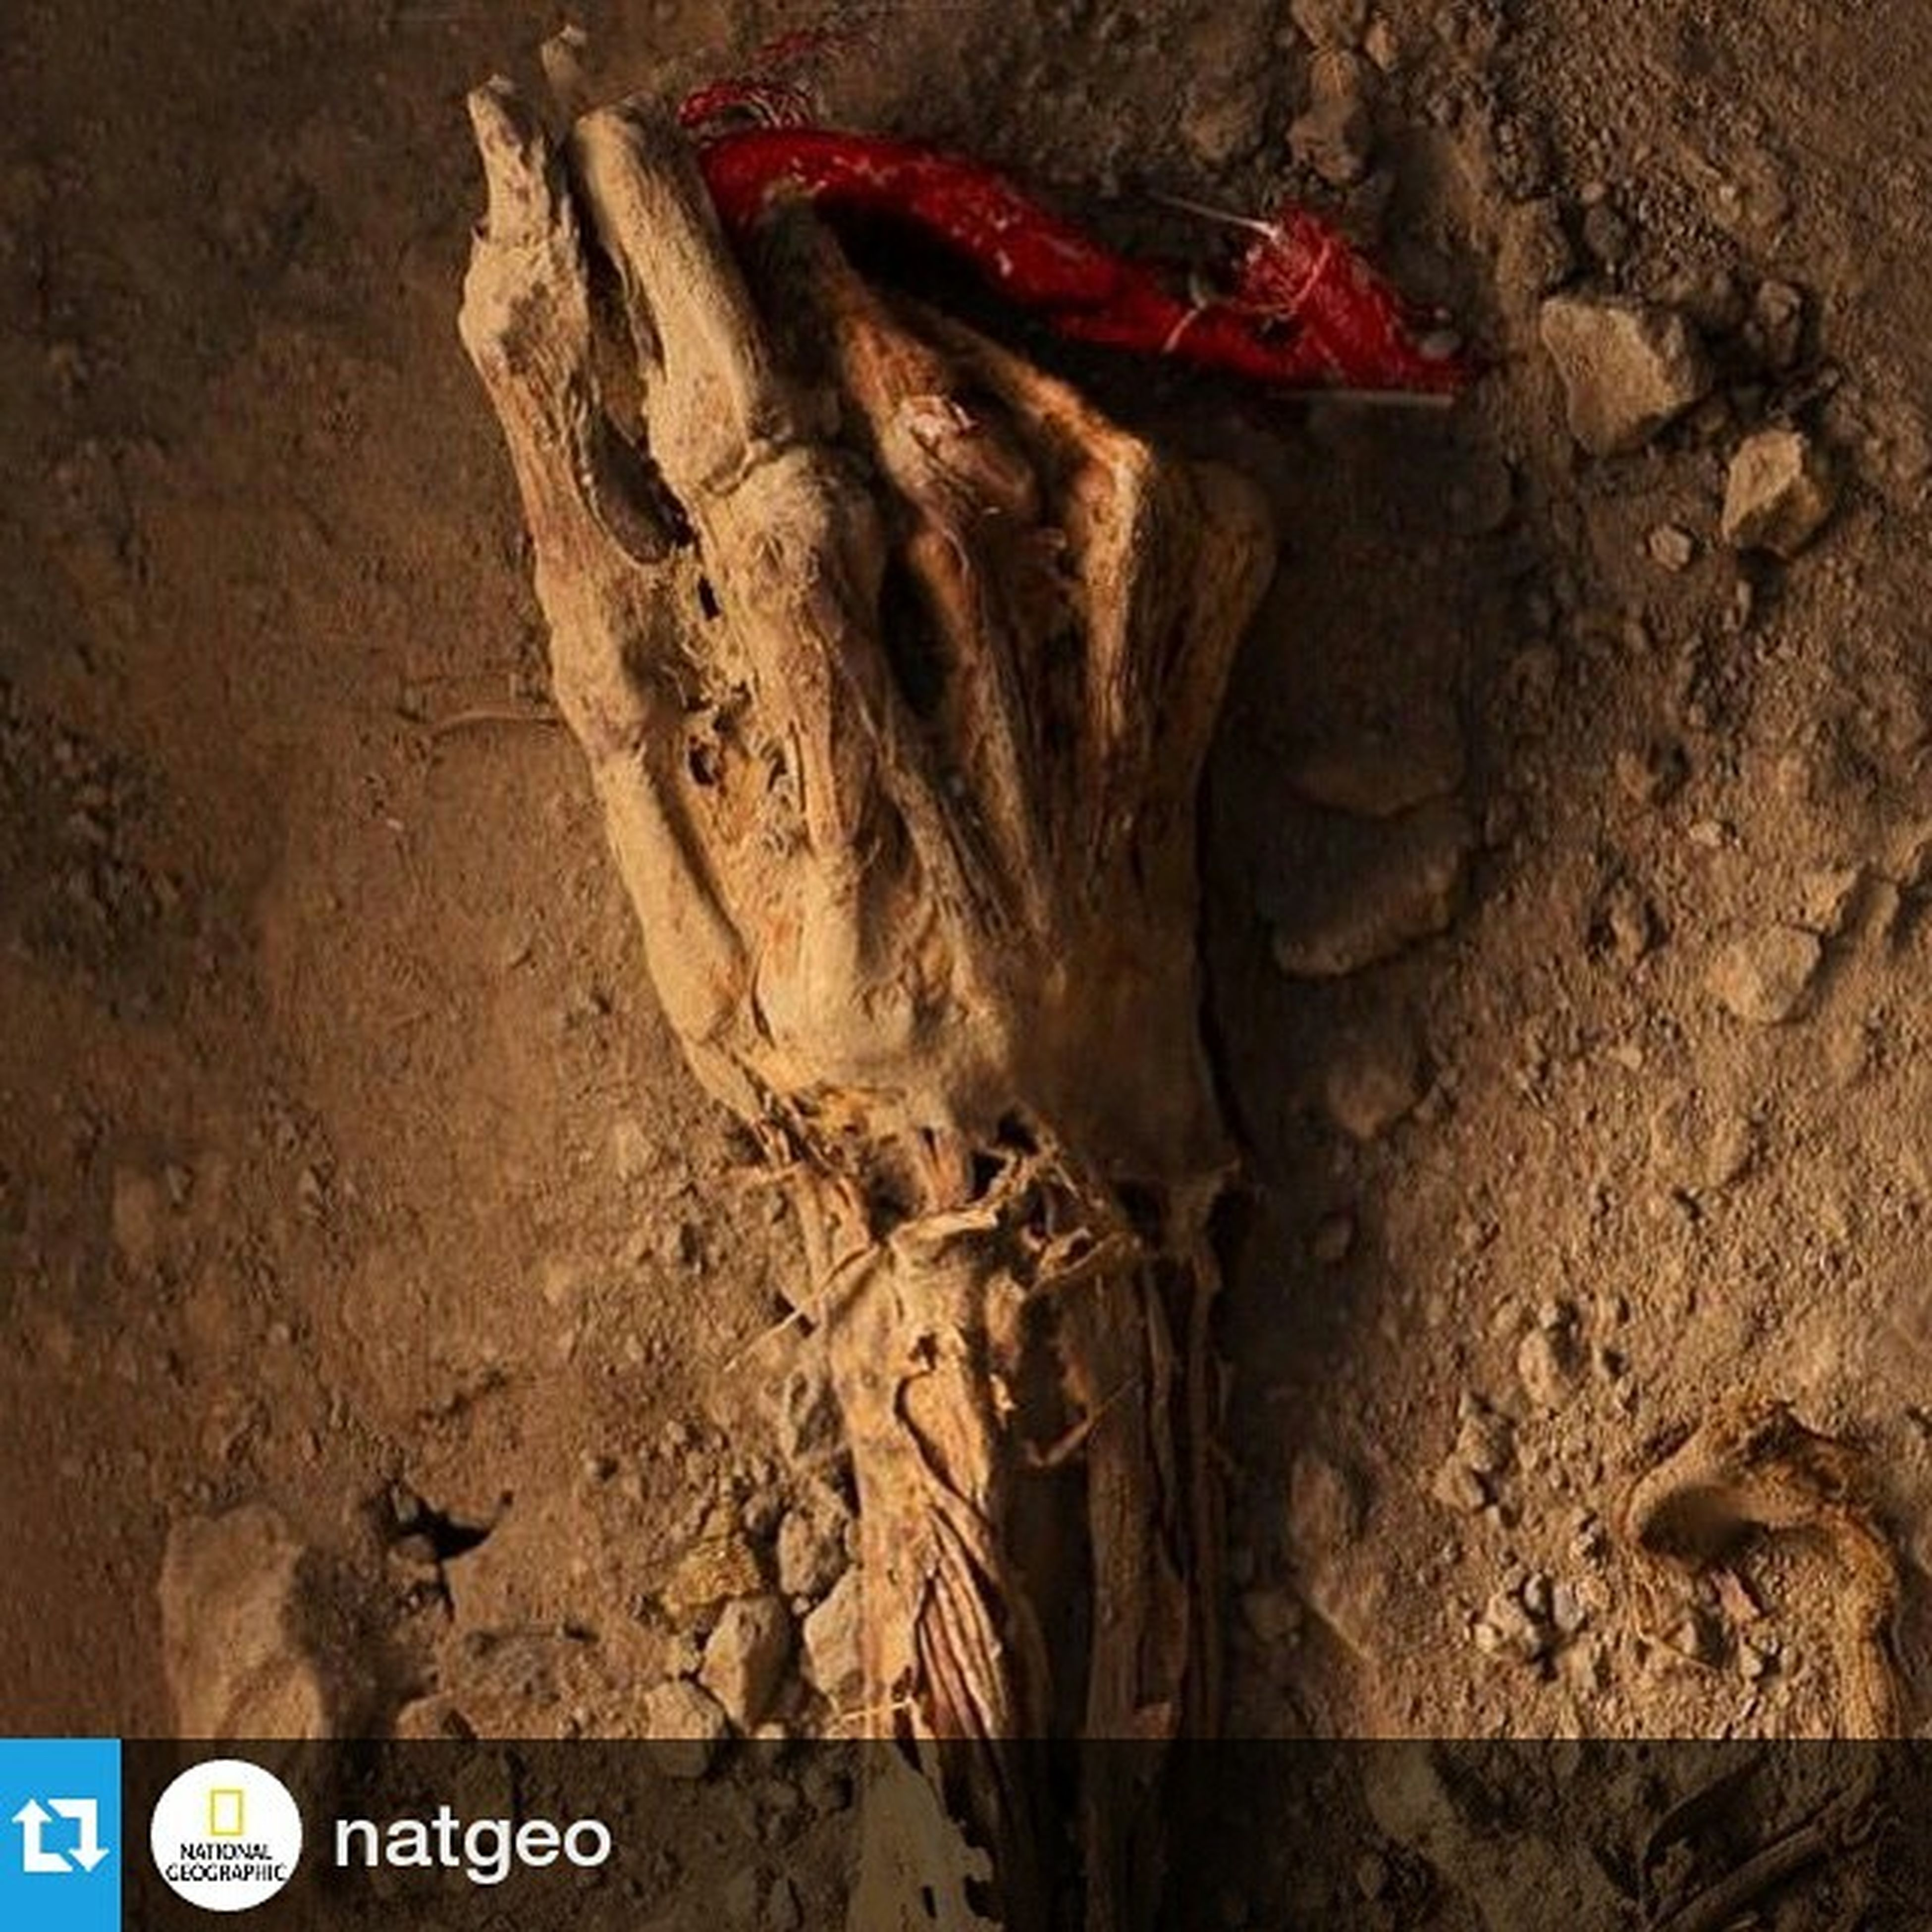 """Halay çekerken gömülmek Repost @natgeo ・・・ An undisturbed hand, which was clutching a fragment of crimson fabric was uncovered before my eyes while working on a archeological dig in Huarmey Peru . The Archeologist , @Natgeo photo editor @Kim_Hubbard and I were privileged to watch as this 1000 year old mummified hand was discovered. I'm always amazing to see something that has not been seen in over 1,000 years or more come back to """"life"""". I made this picture in the first hour of my first trip to the dig. Sometimes the best stuff is right in front of you, right off the bat. I just heard that this image was selected as one of the winning entries in the 2015 Communicate Arts photo contest. This is part of the amazing opportunities that I have had as a photographer for National Geographic. This coming Tuesday, April 21st, I will be speaking @NatGeo headquarters for an @NatGeoLive event about my work as a photographer for the magazine, and how I improved my skill set to make myself attractive to the magazine. Please come if you are DC. @RobertClarkphoto @thephotosociety @Natgeo @InstituteArtist"""